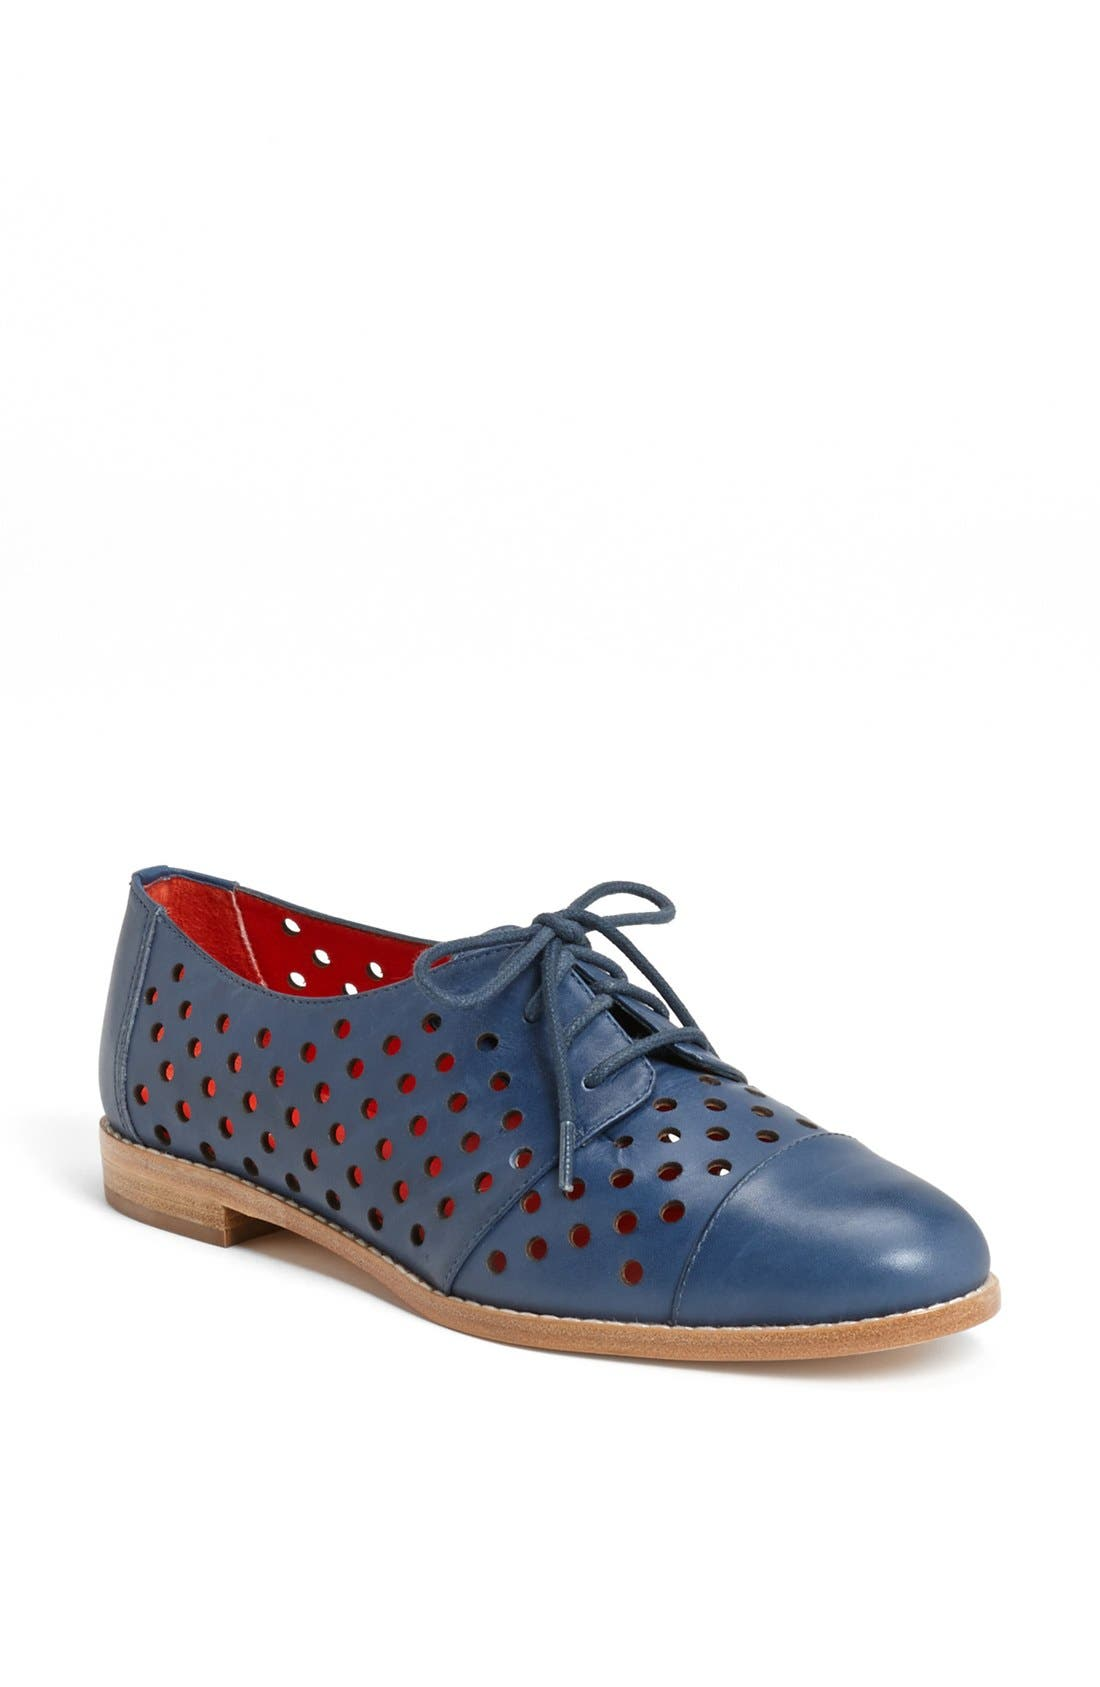 Main Image - kate spade new york 'peekaboo' leather oxford